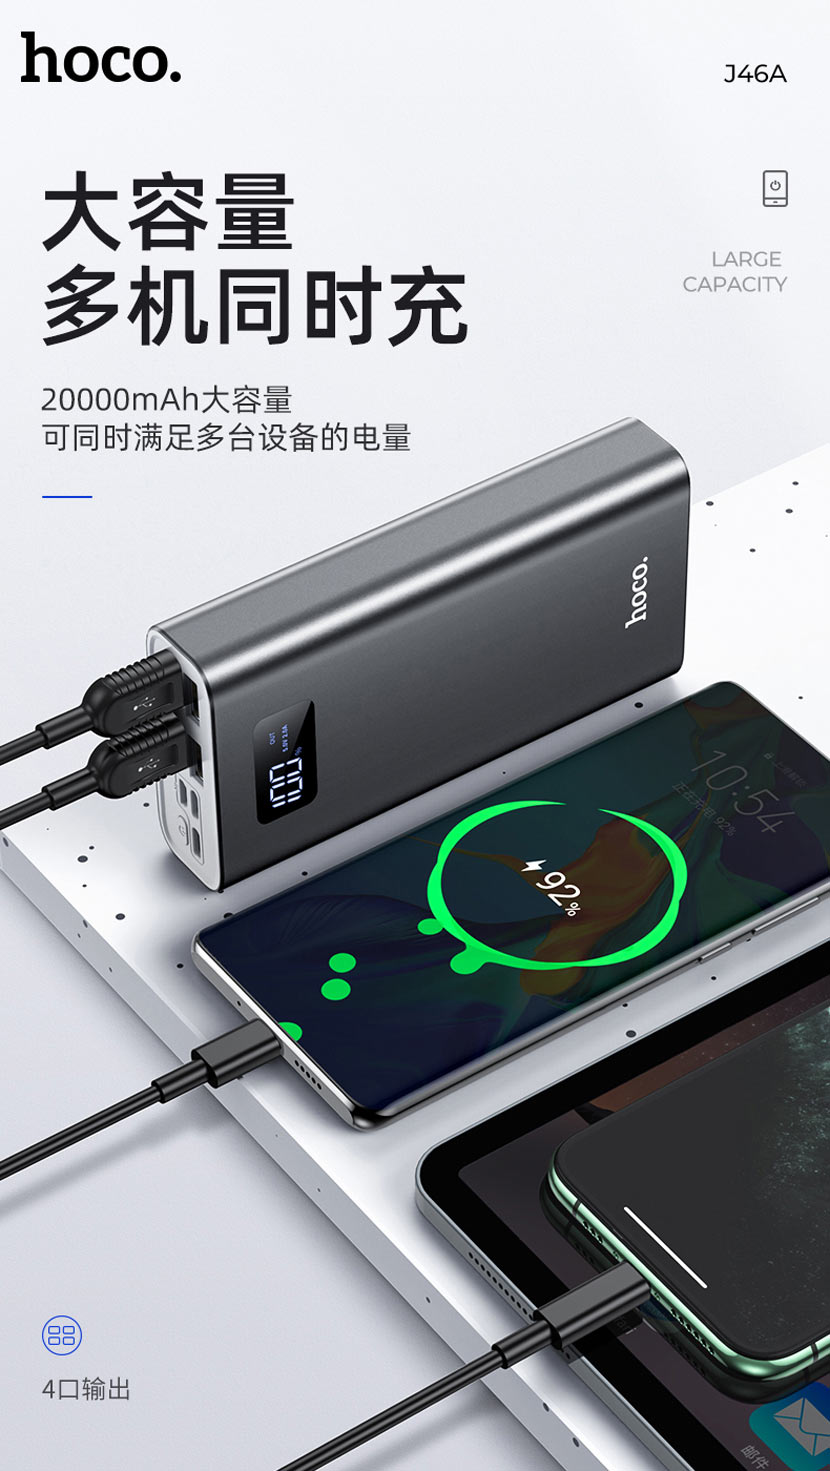 hoco news j46a star ocean mobile power bank 20000mah charging cn